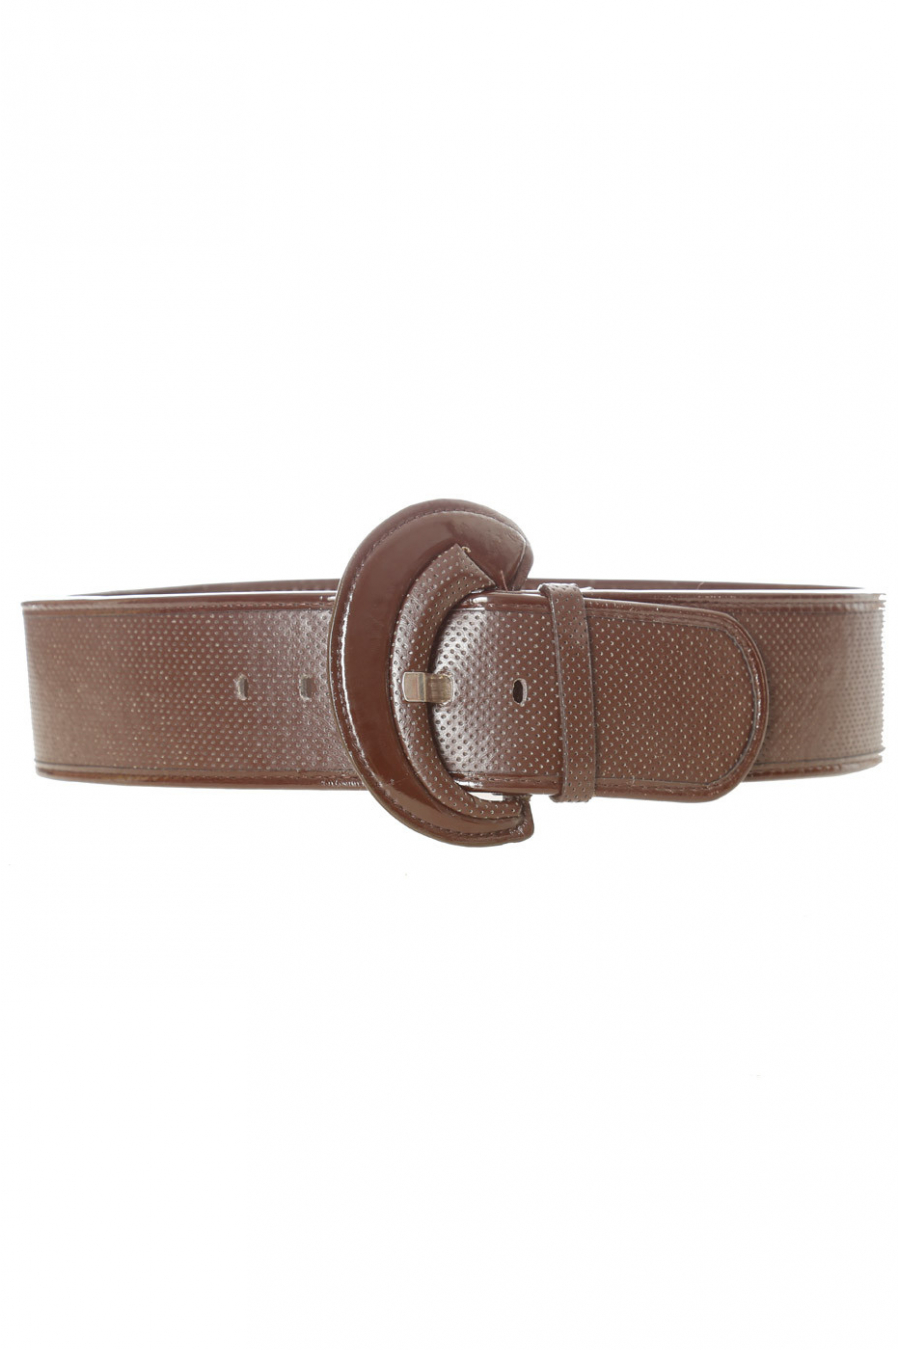 Brown quilted style belt with shiny oval buckle. BG-0101